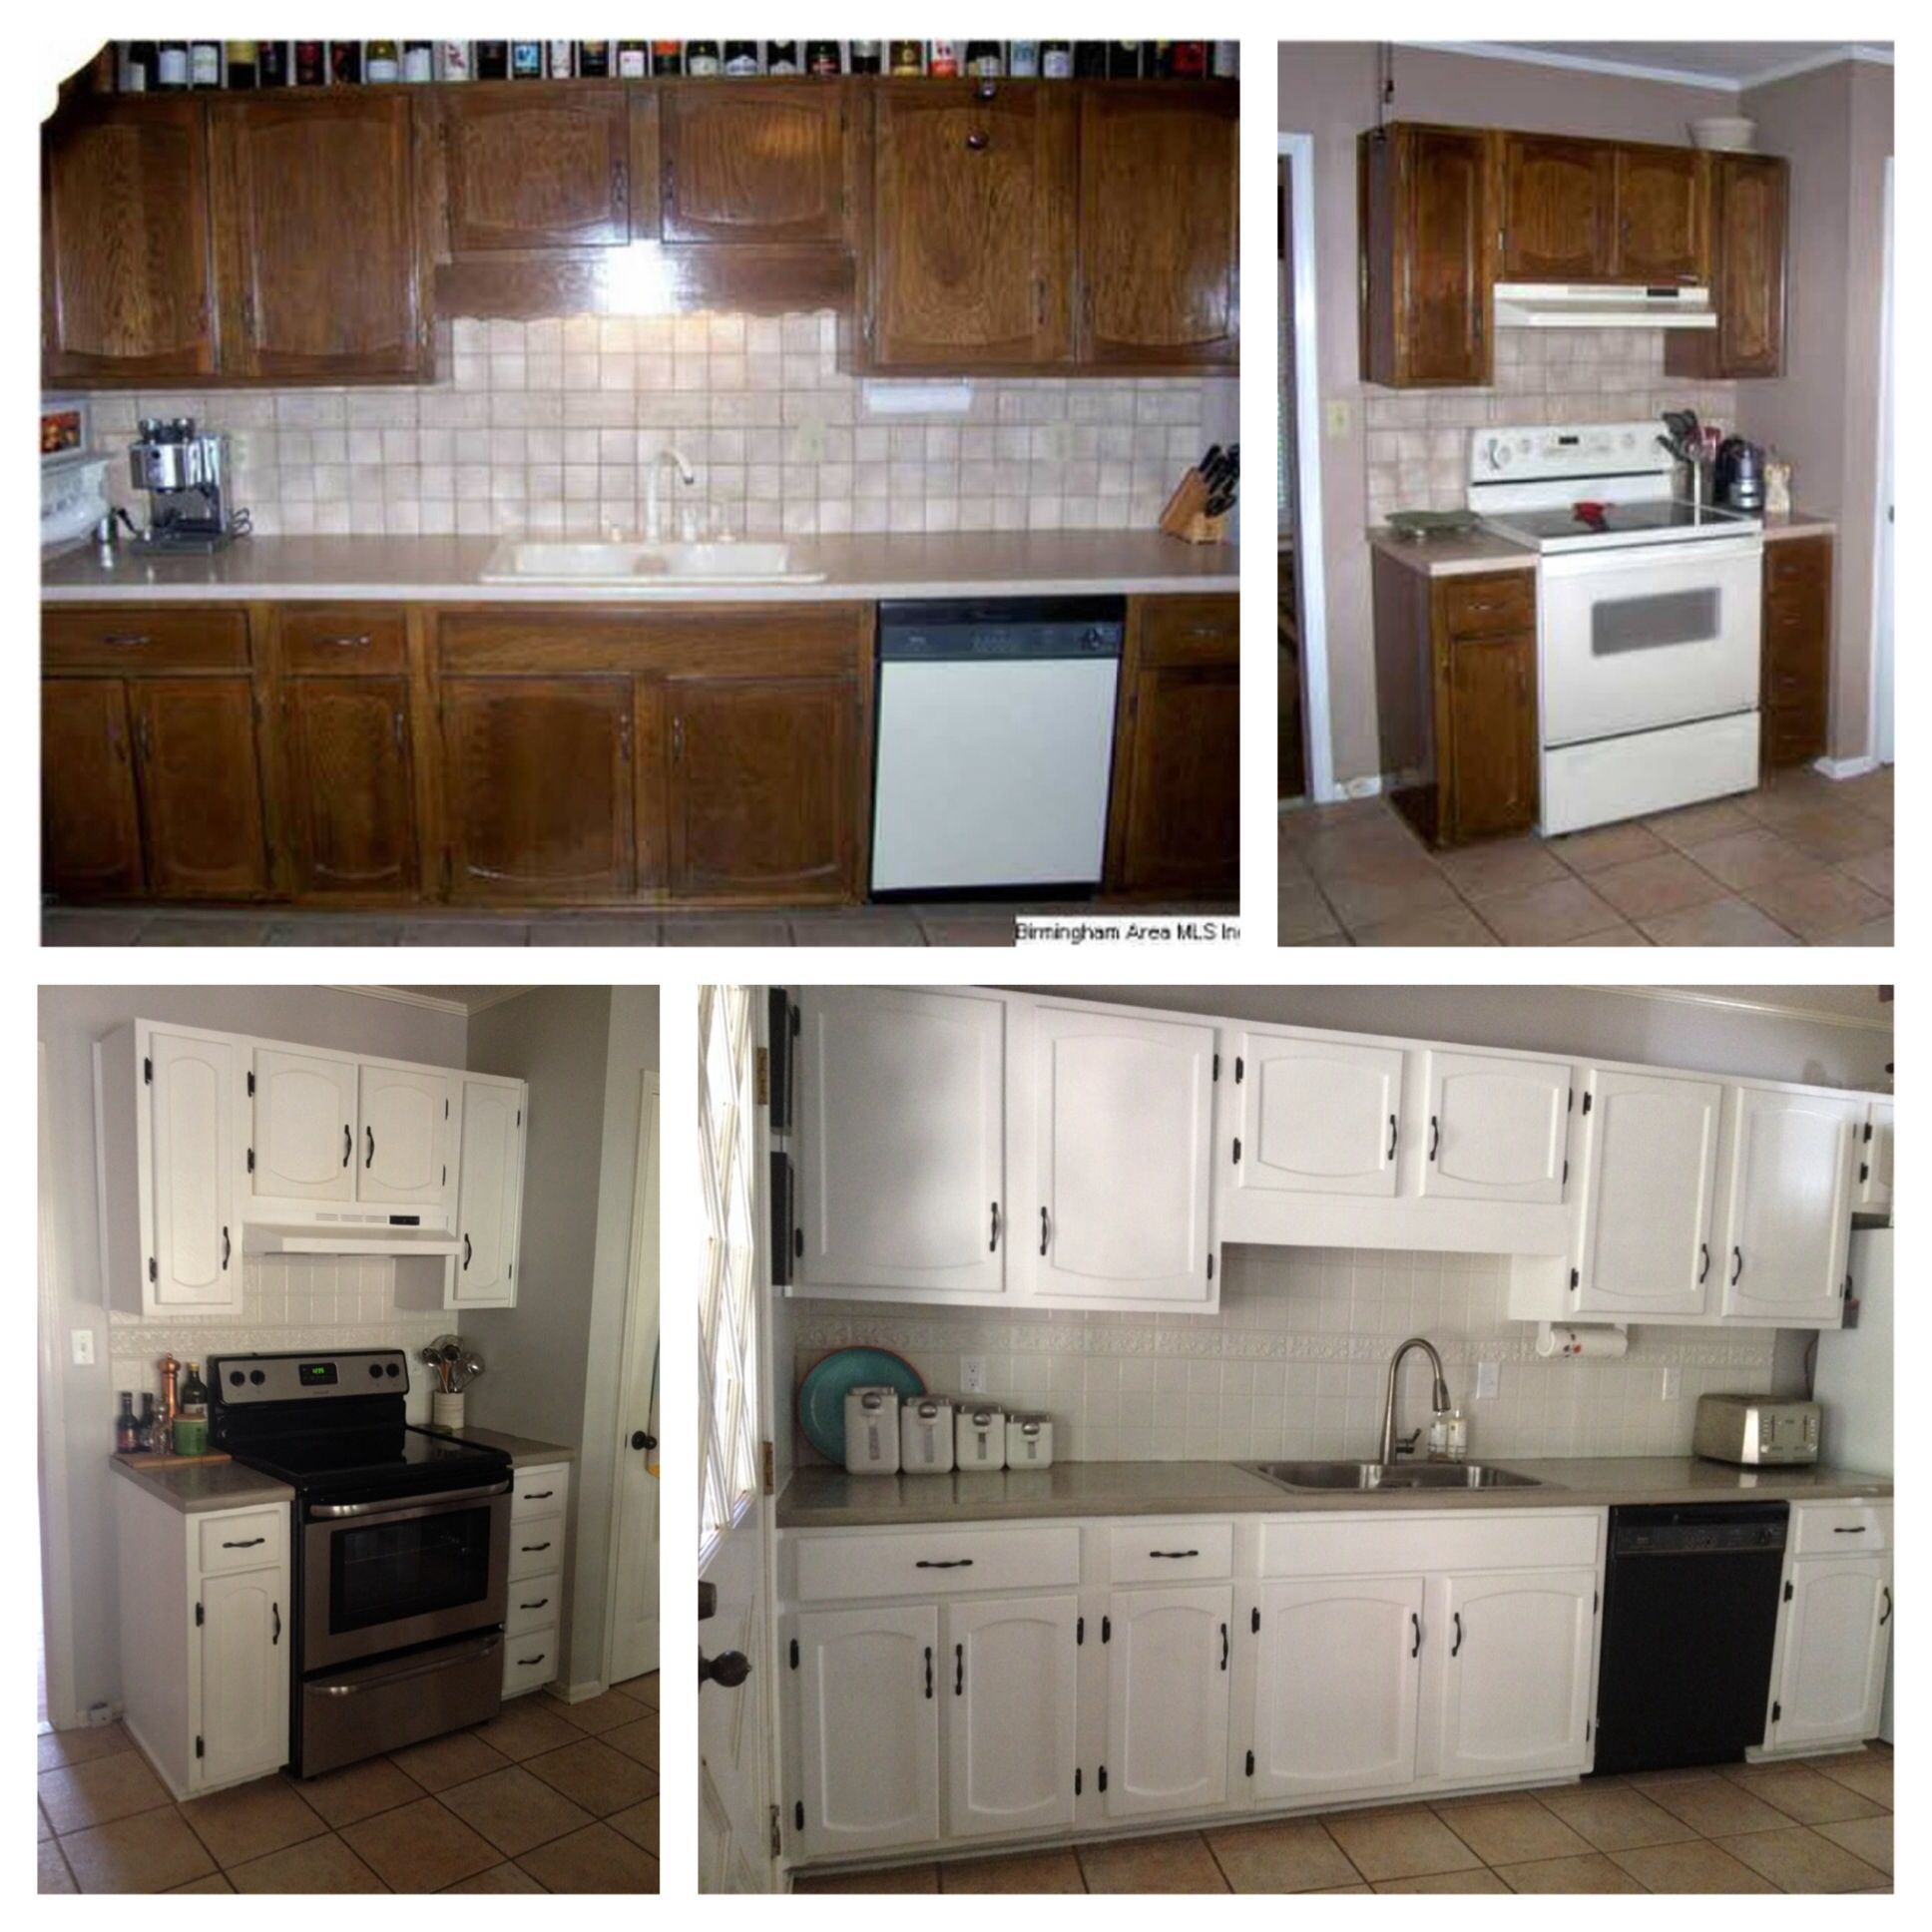 Replacing Kitchen Cabinets On A Budget: DIY Kitchen Reno On A Budget: (1) Paint Cabinets